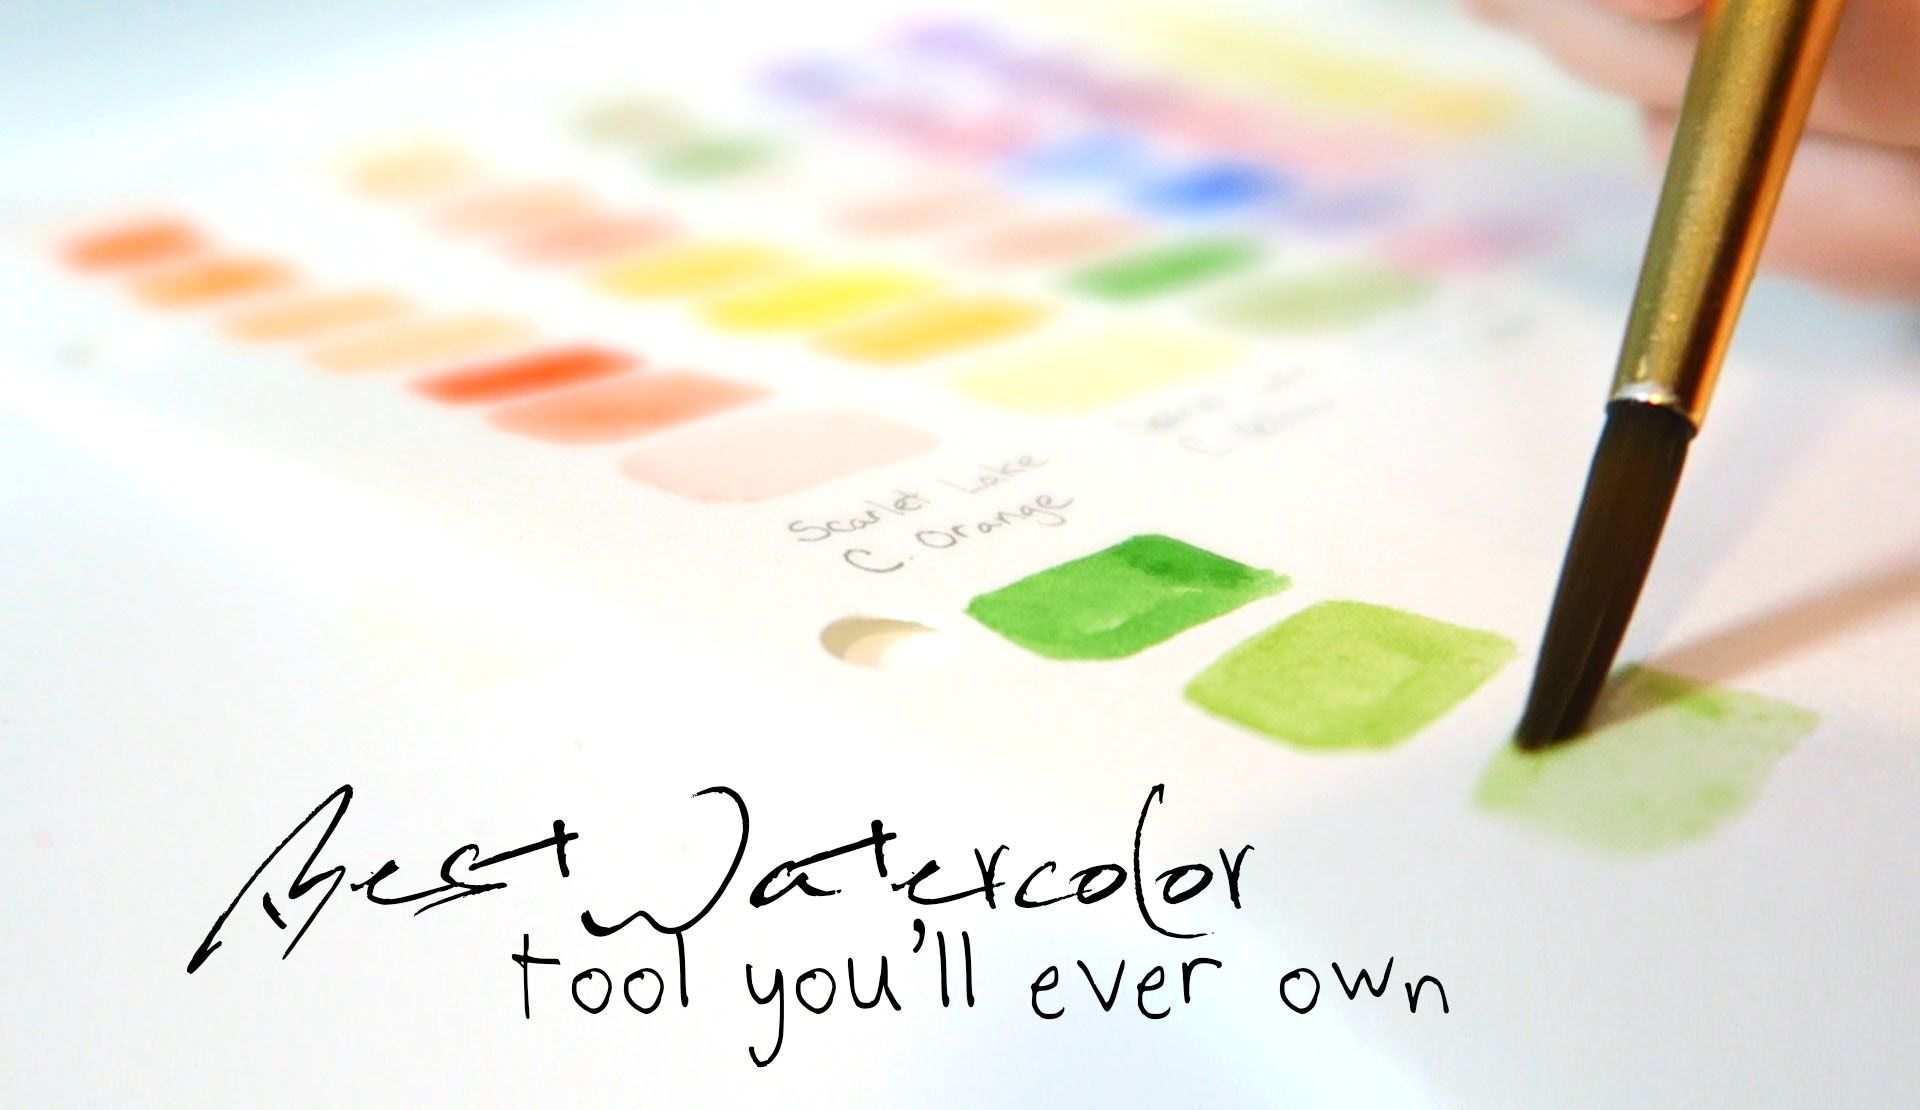 Best Watercolor Tool You Ll Ever Own Watercolour Tutorials